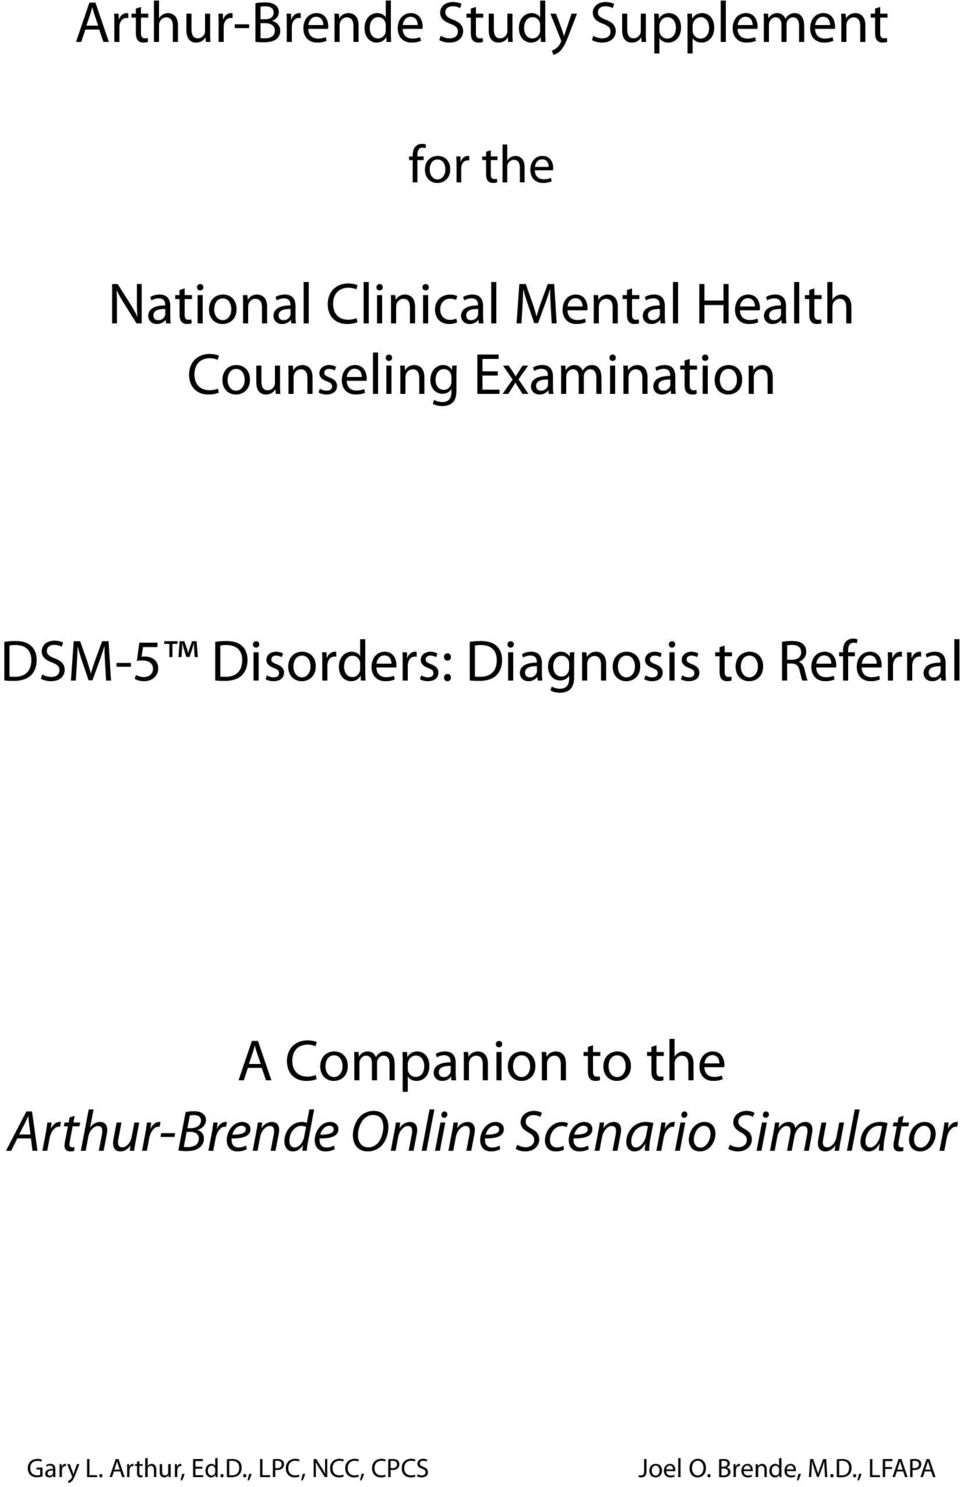 DSM-5 ONLINE SCENARIO SIMULATOR UPDATED NATIONAL CLINICAL